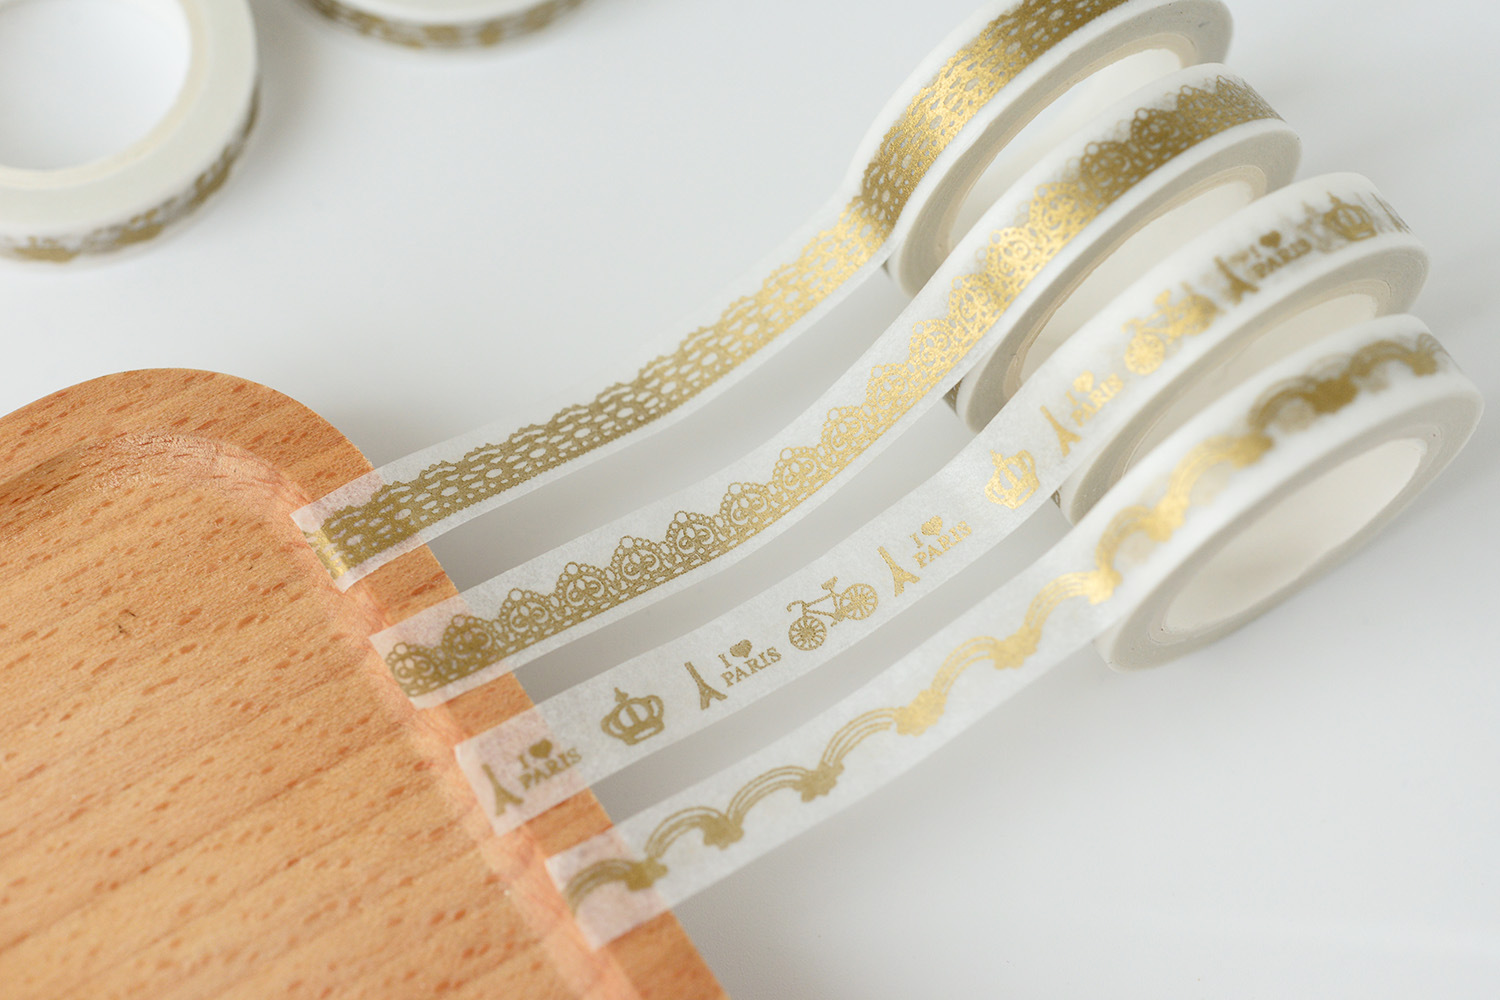 Kawaii Gold Foil Washi Tape Stickers Scrapbooking Masking Tape Decorative Adhesive Tape For School Office Stationery